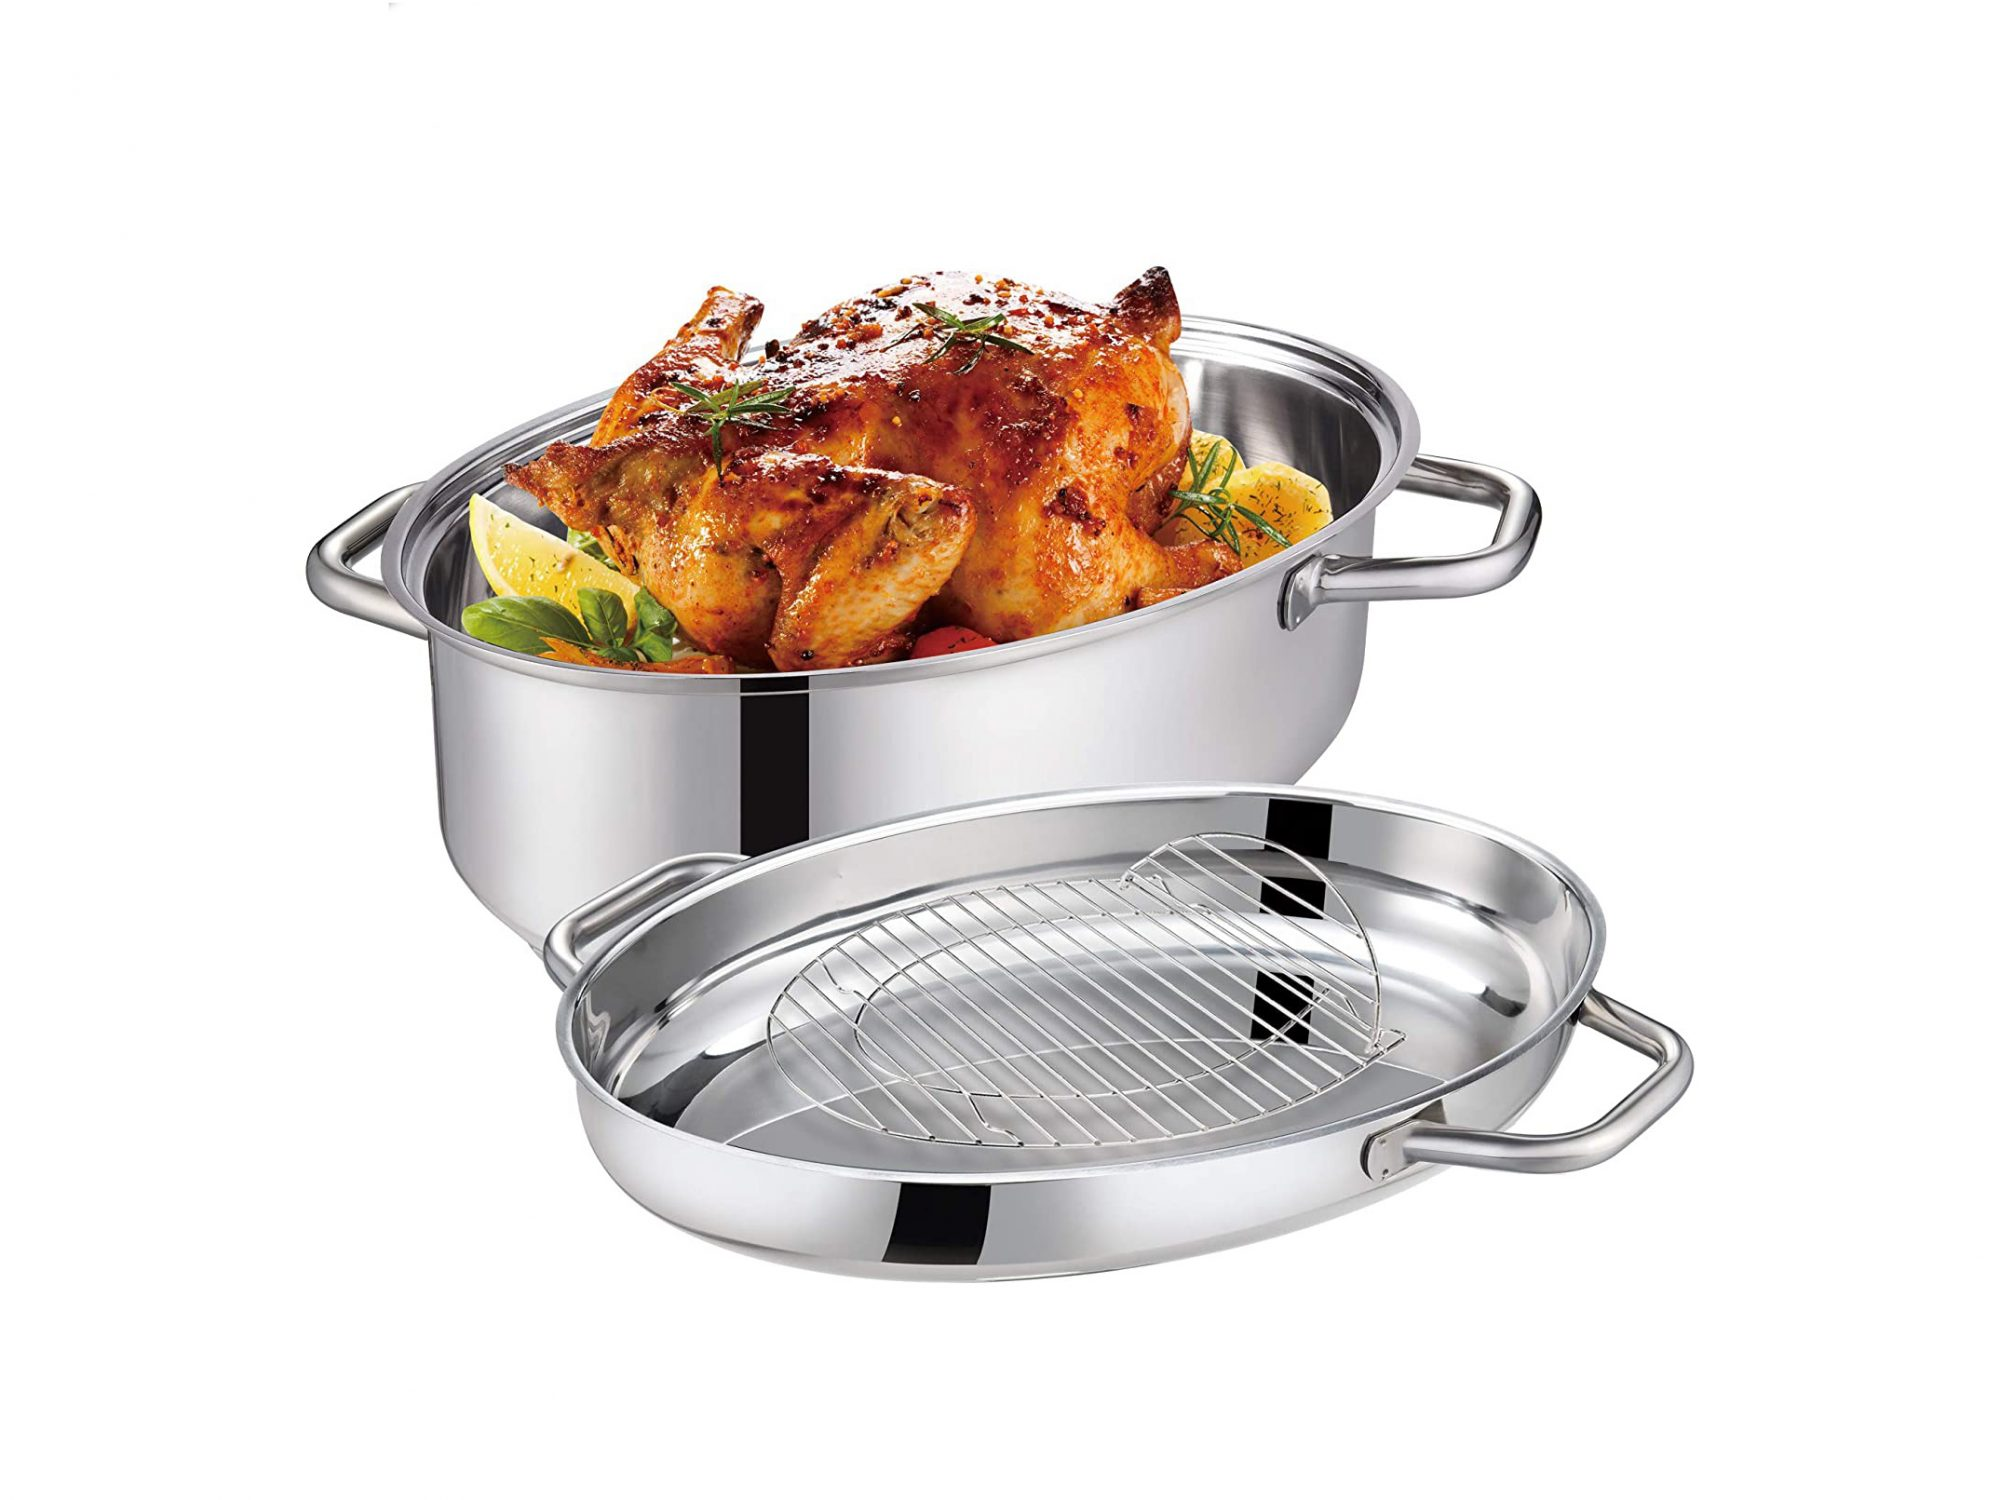 Mr Rudolf 15 inch Roasting Pan with Lid and Rack